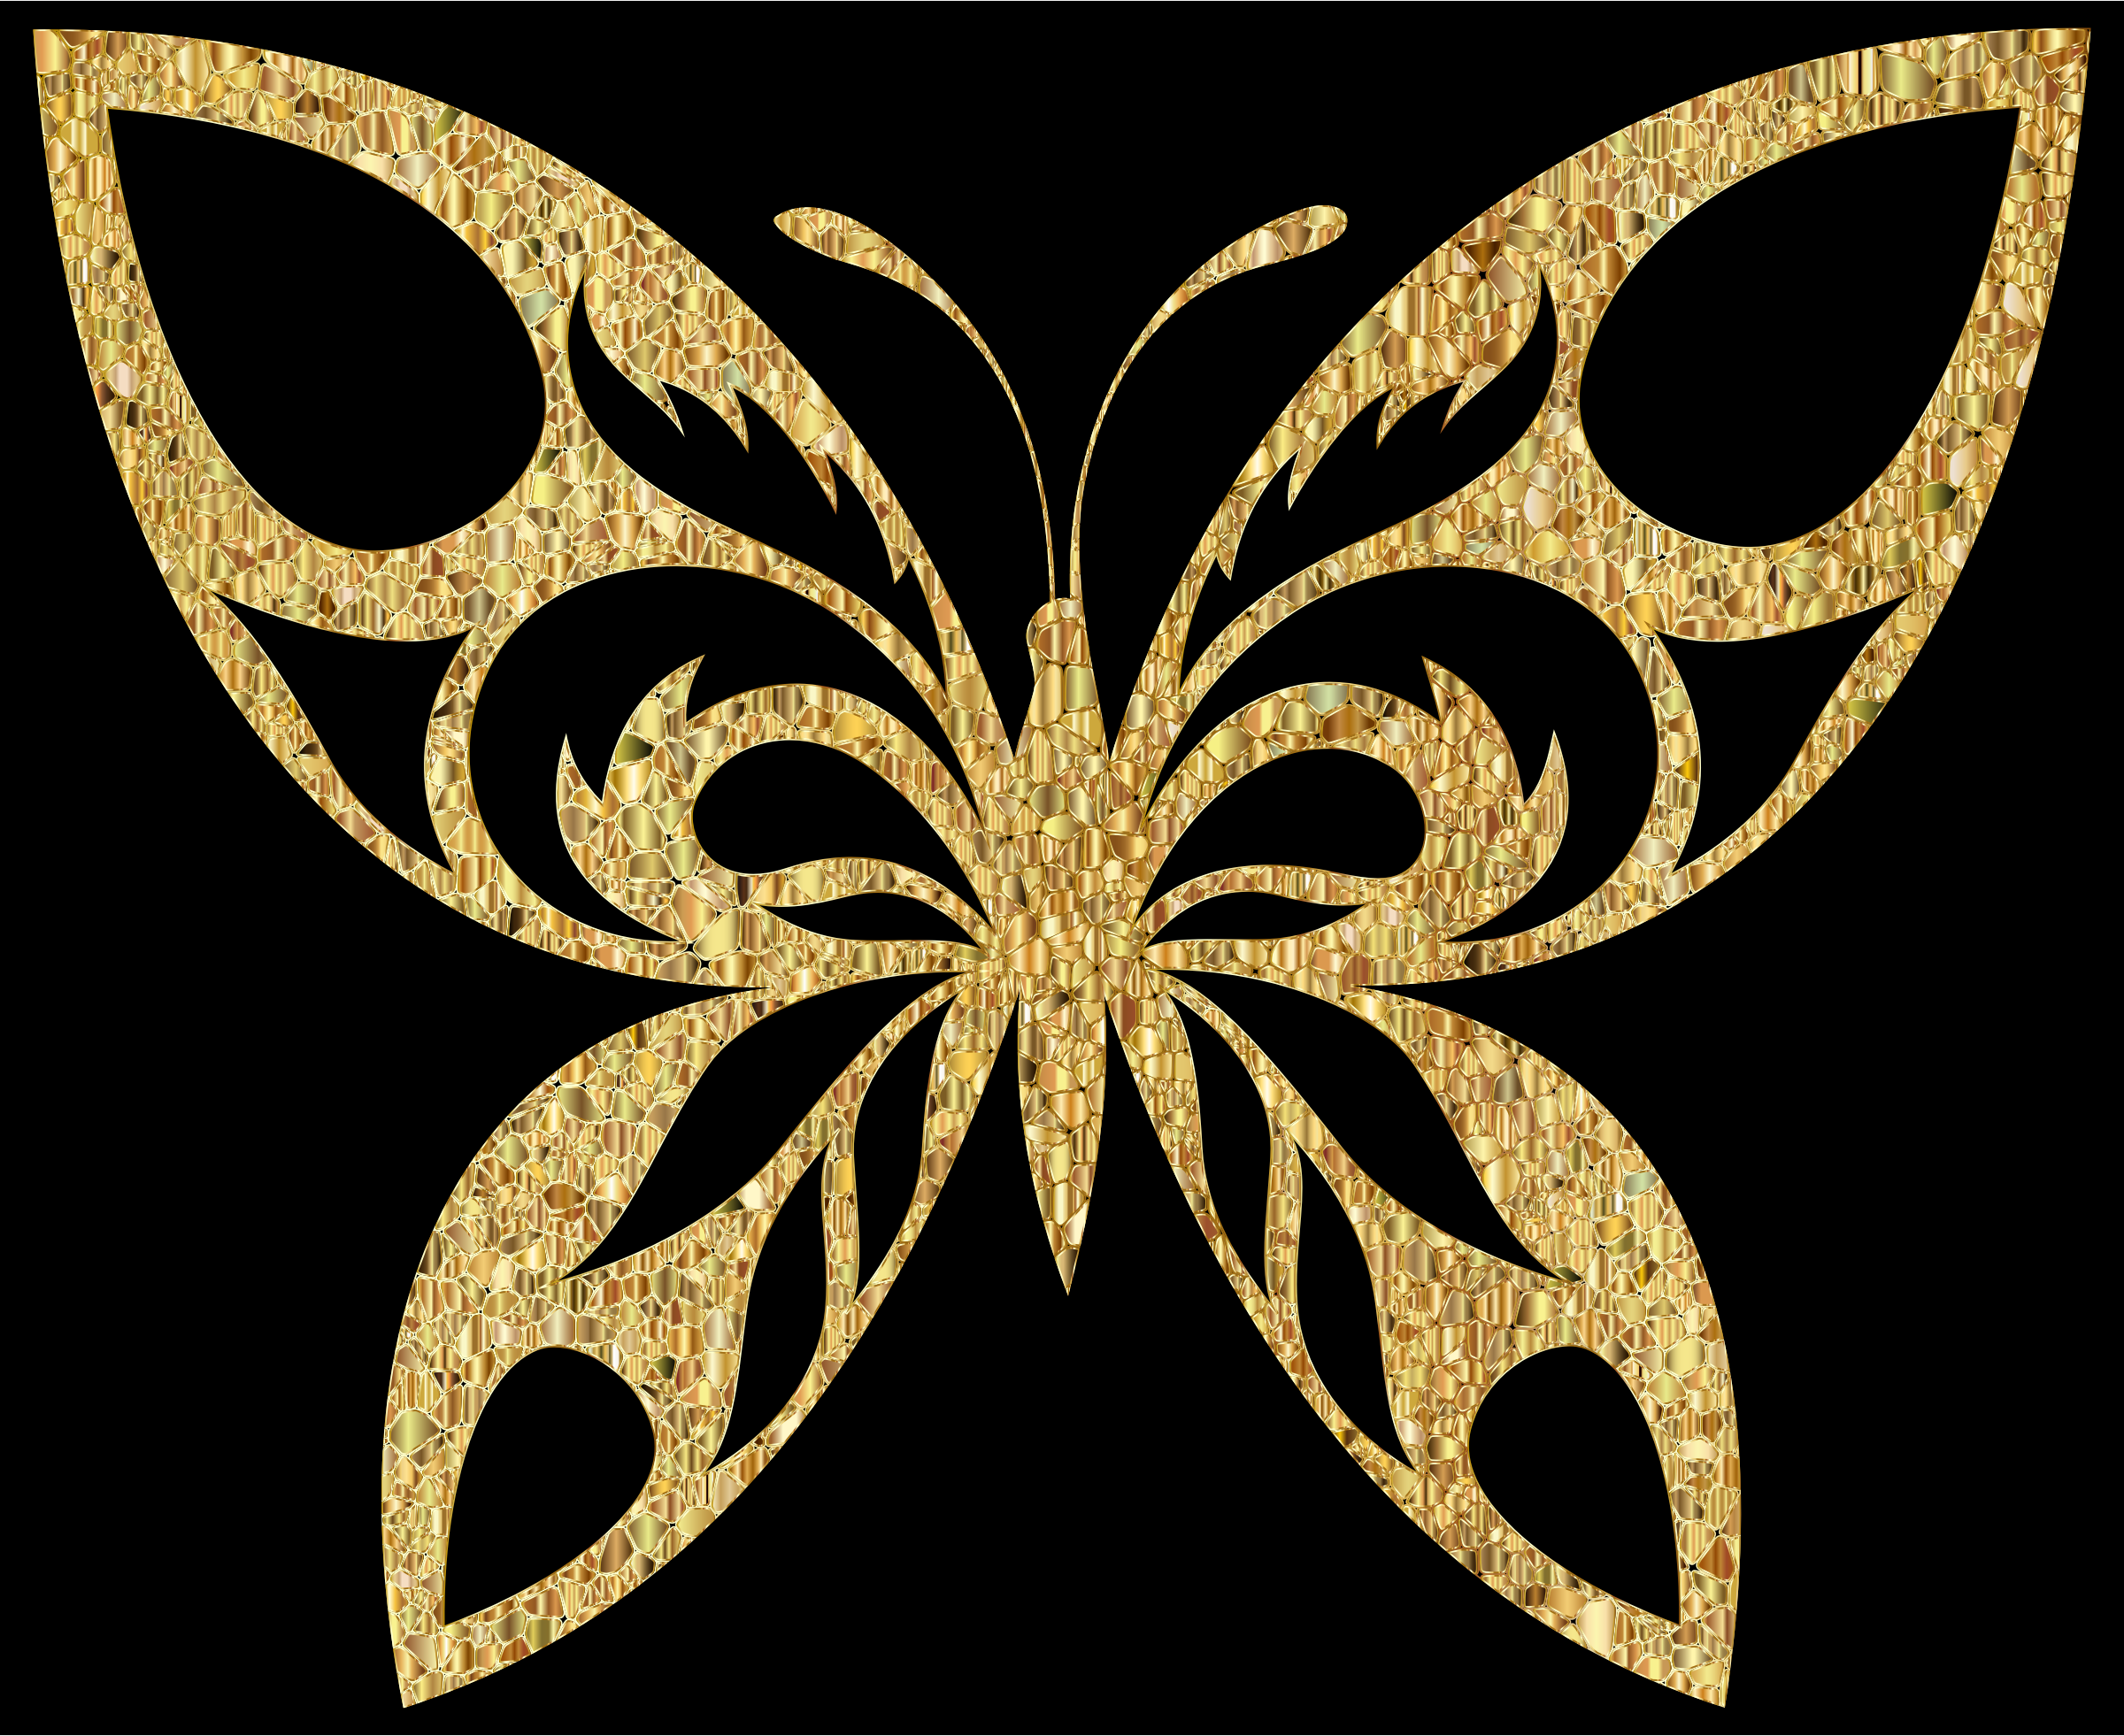 Gold Tiled Tribal Butterfly Silhouette Variation 2 by GDJ